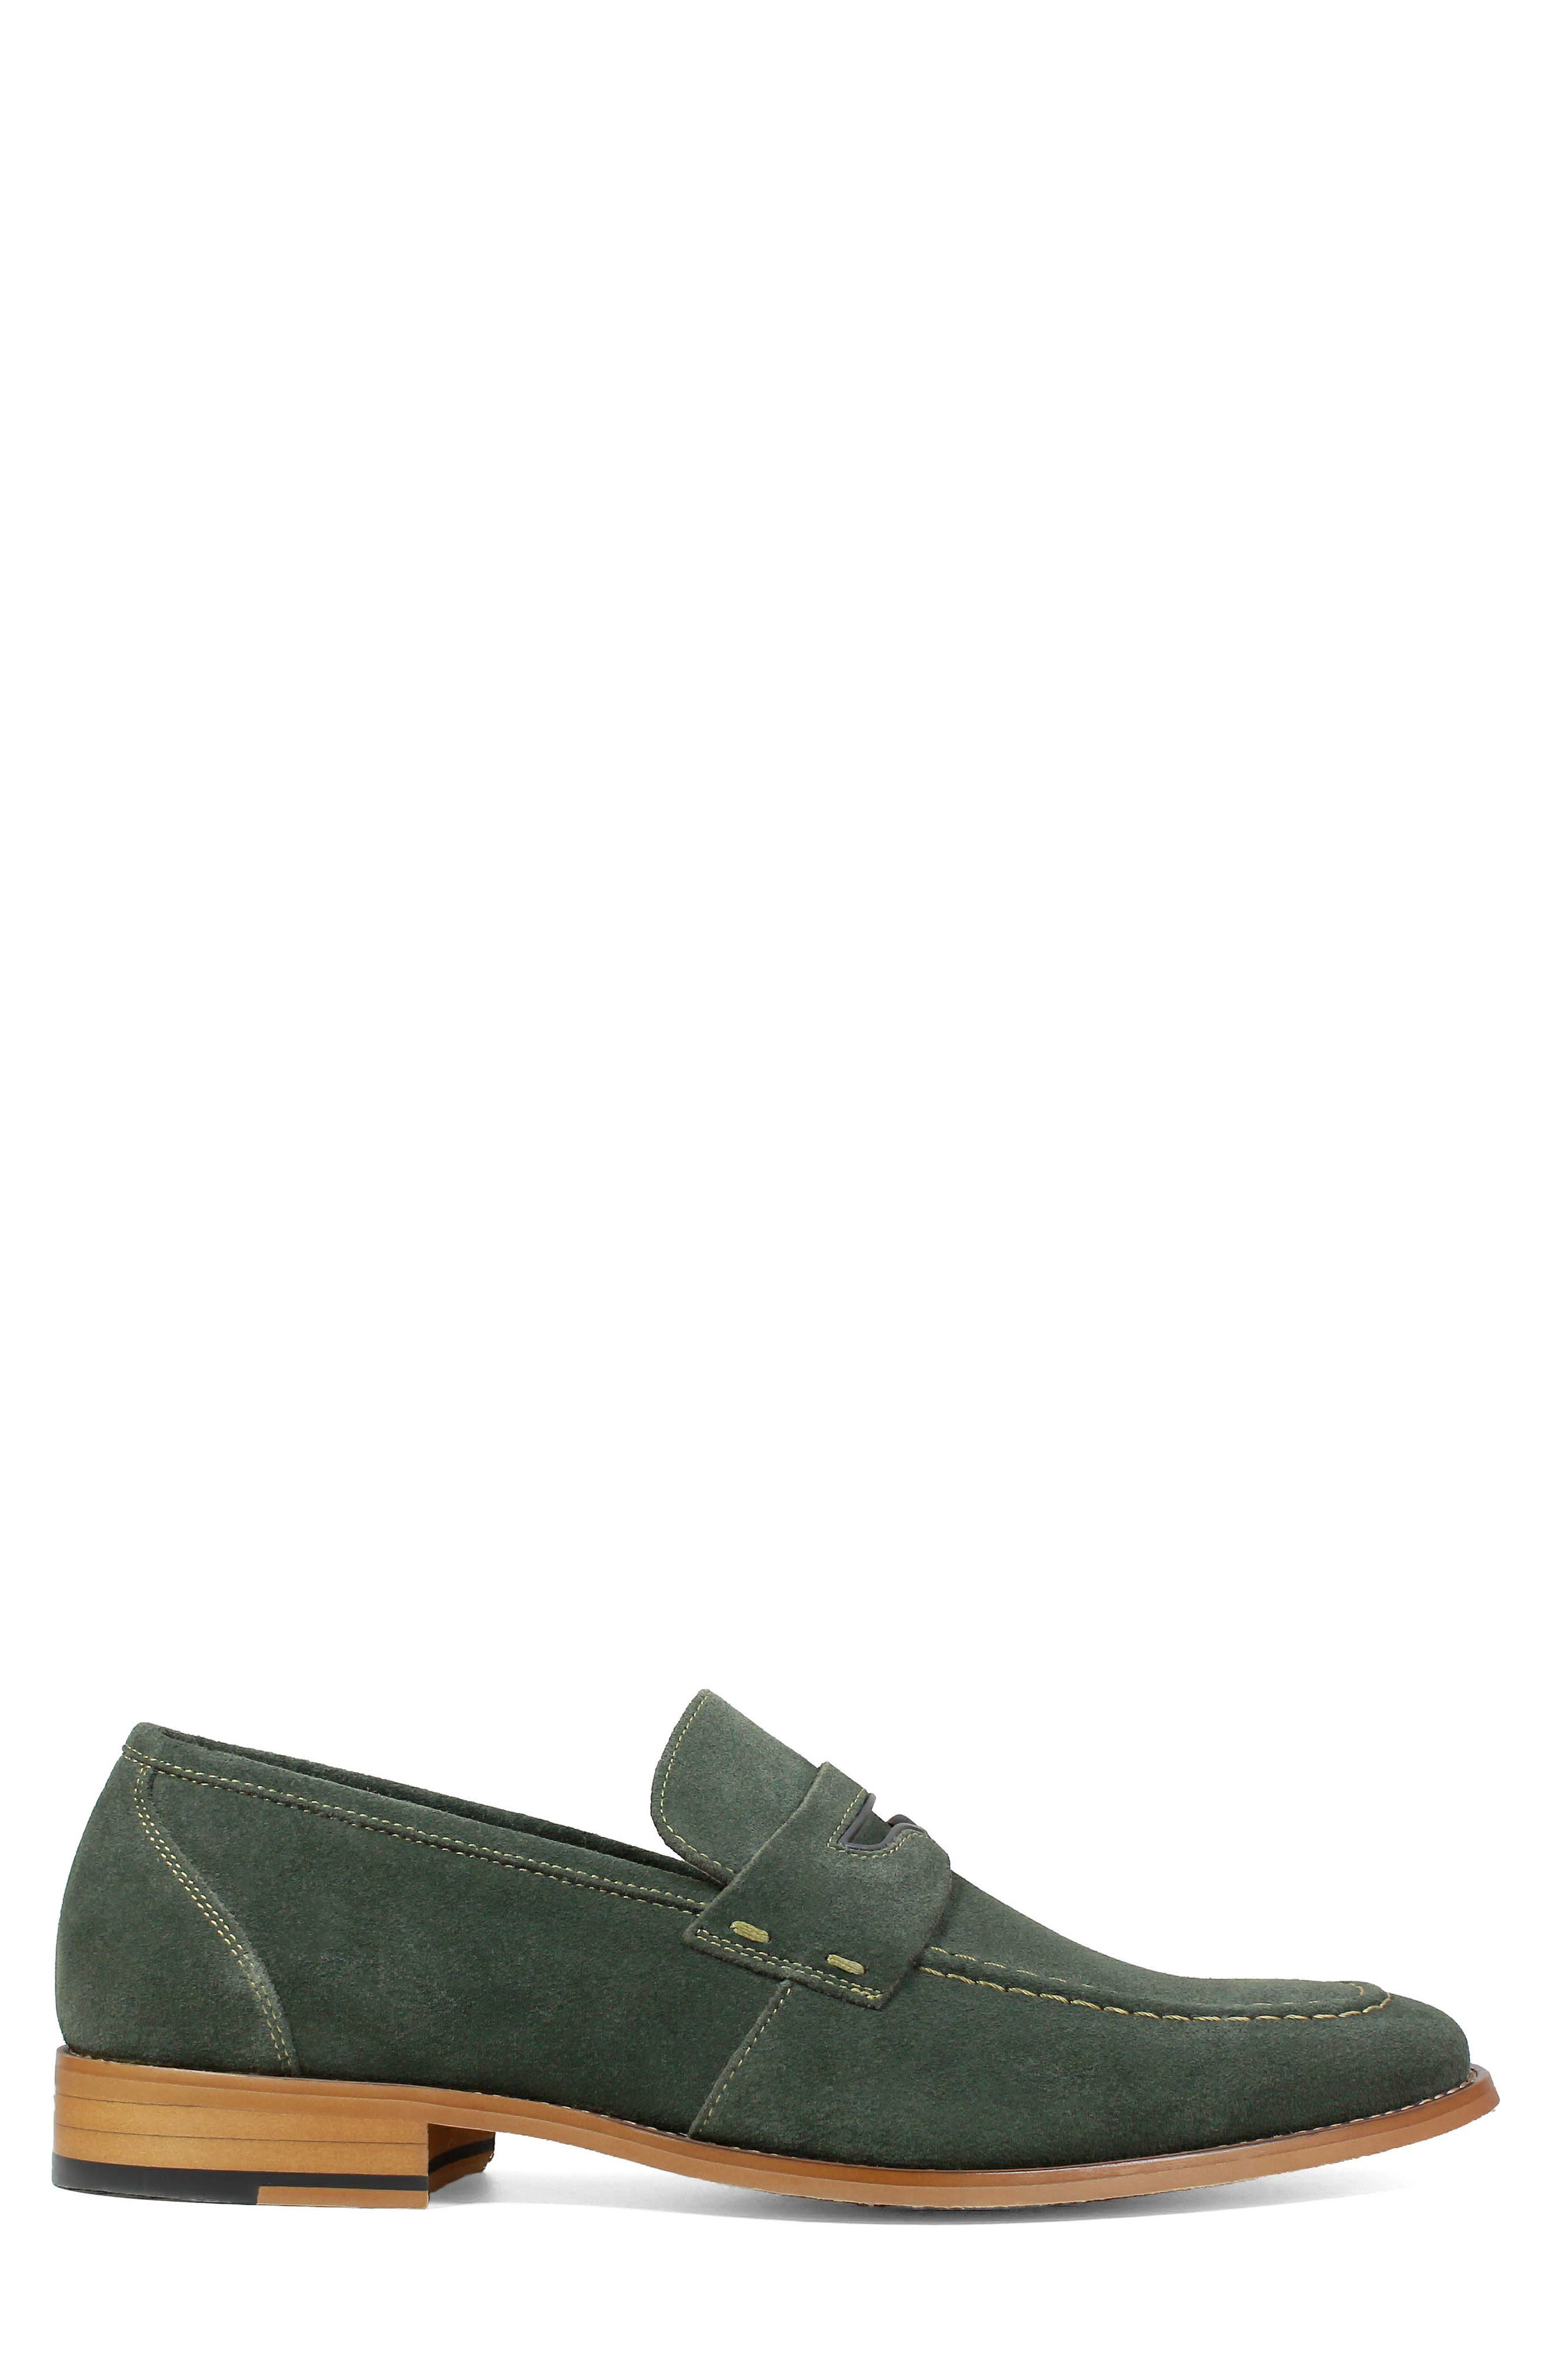 Colfax Apron Toe Penny Loafer,                             Alternate thumbnail 3, color,                             DARK GREEN SUEDE